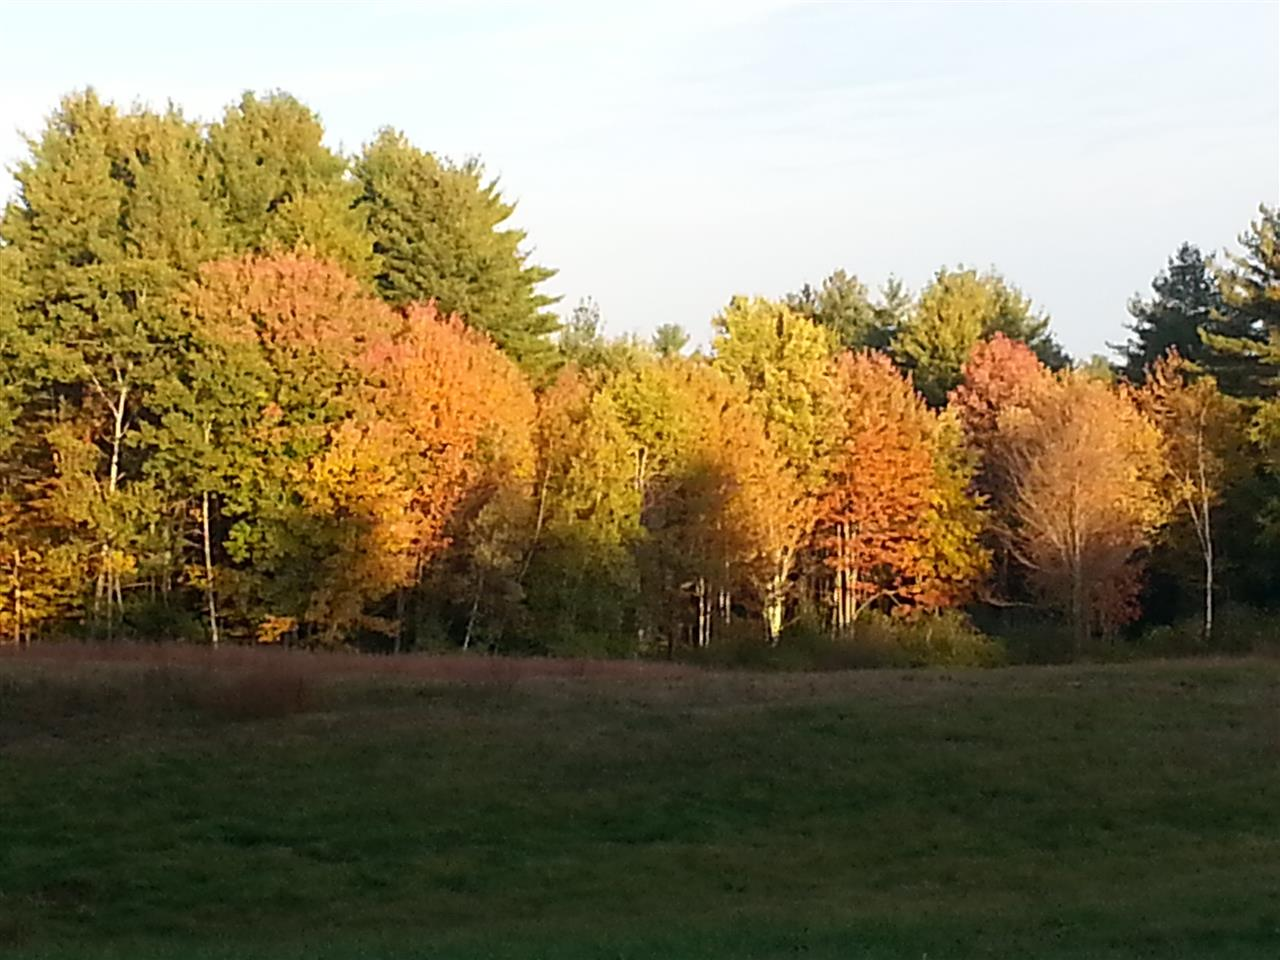 Trees across the field in Newmarket,  New Hampshire, a small town near the NH seacoast